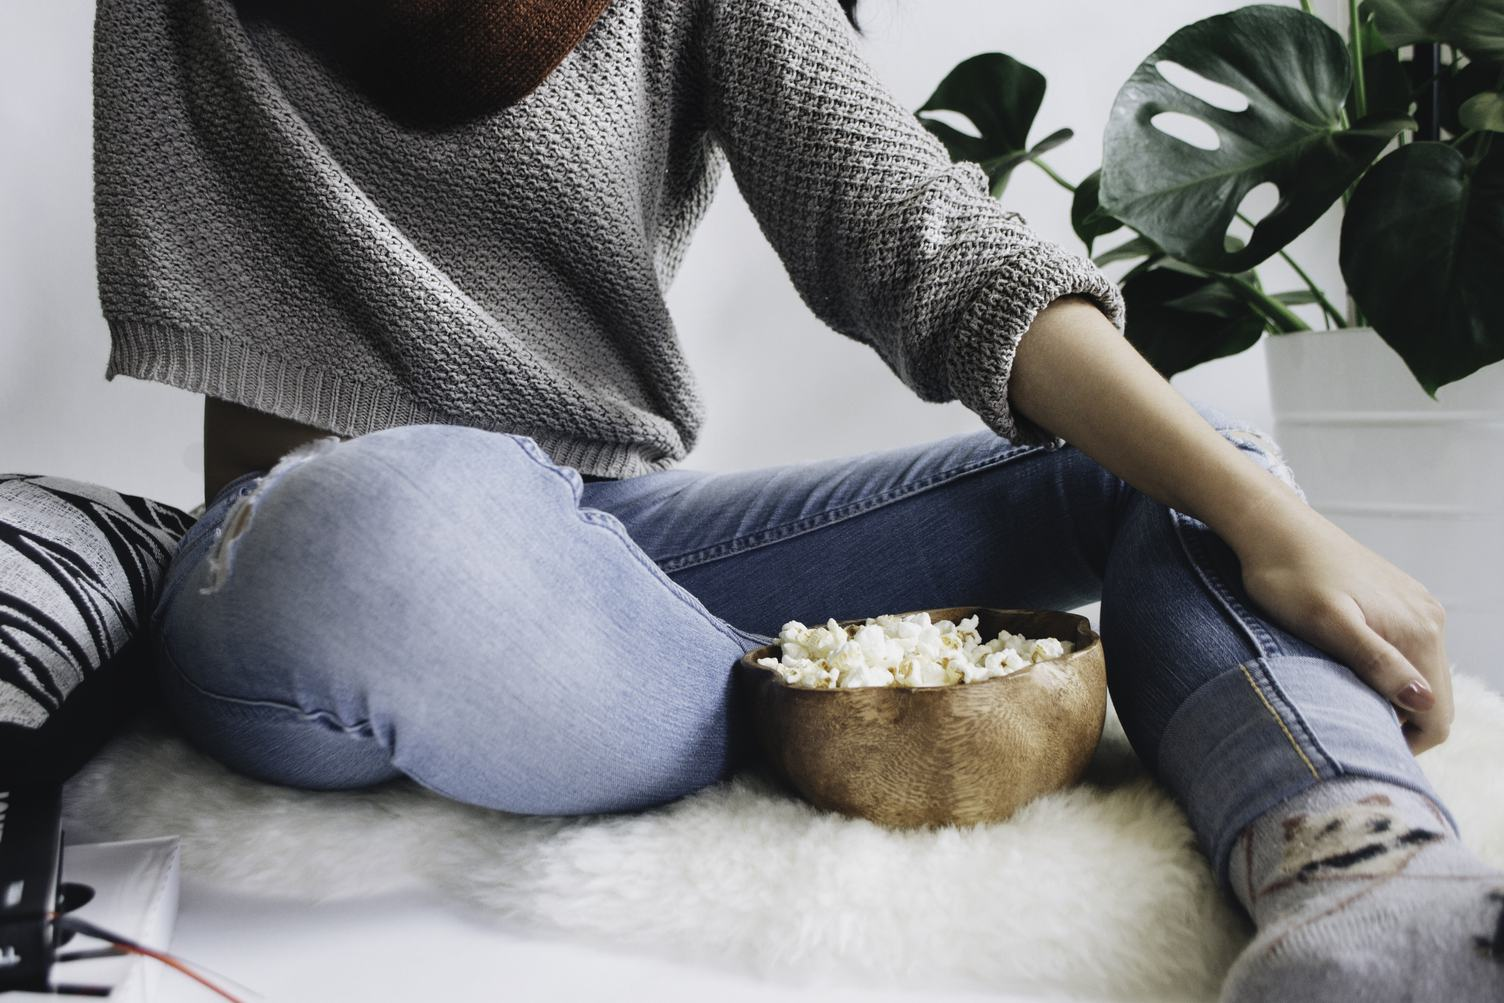 Woman with a Large Wooden Bowl of Popcorn